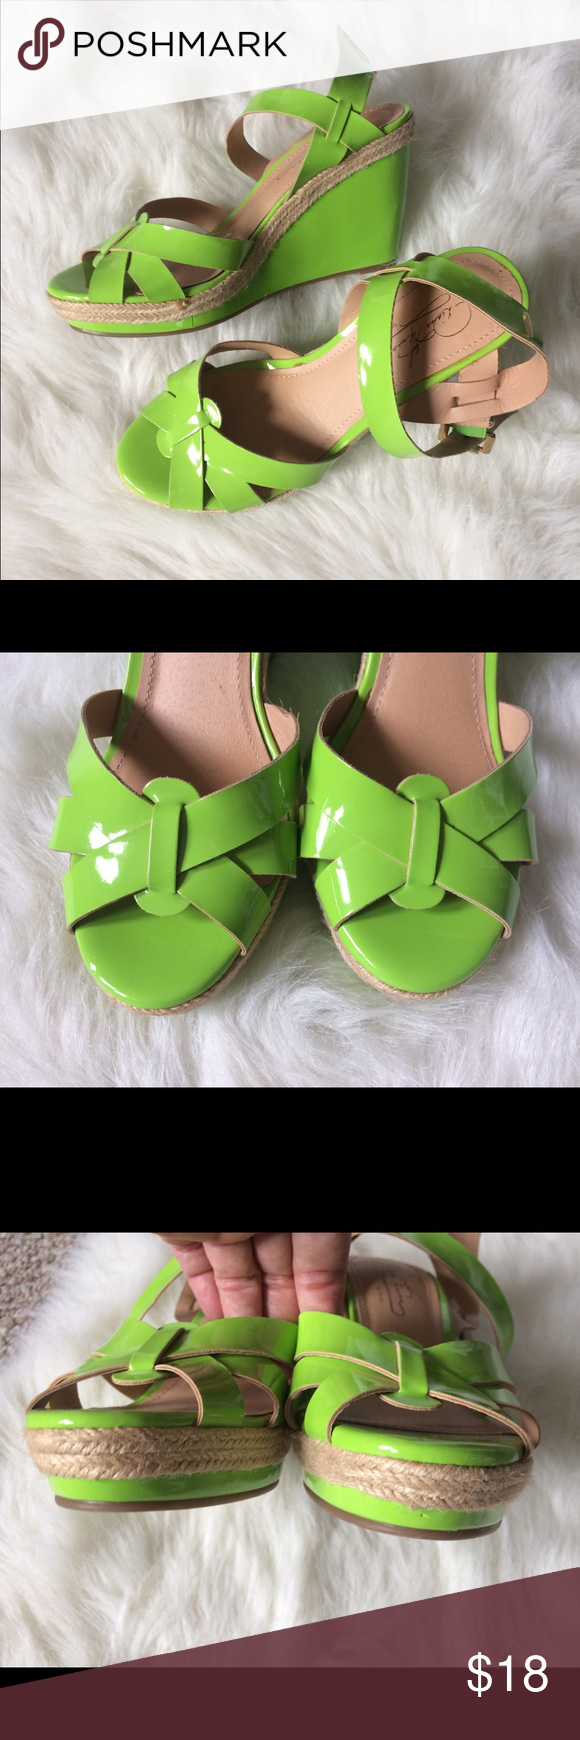 d48f73c6532a Neon green summer wedge sandal heels 7.5 Diane Gilman for Theory. Bright neon  green